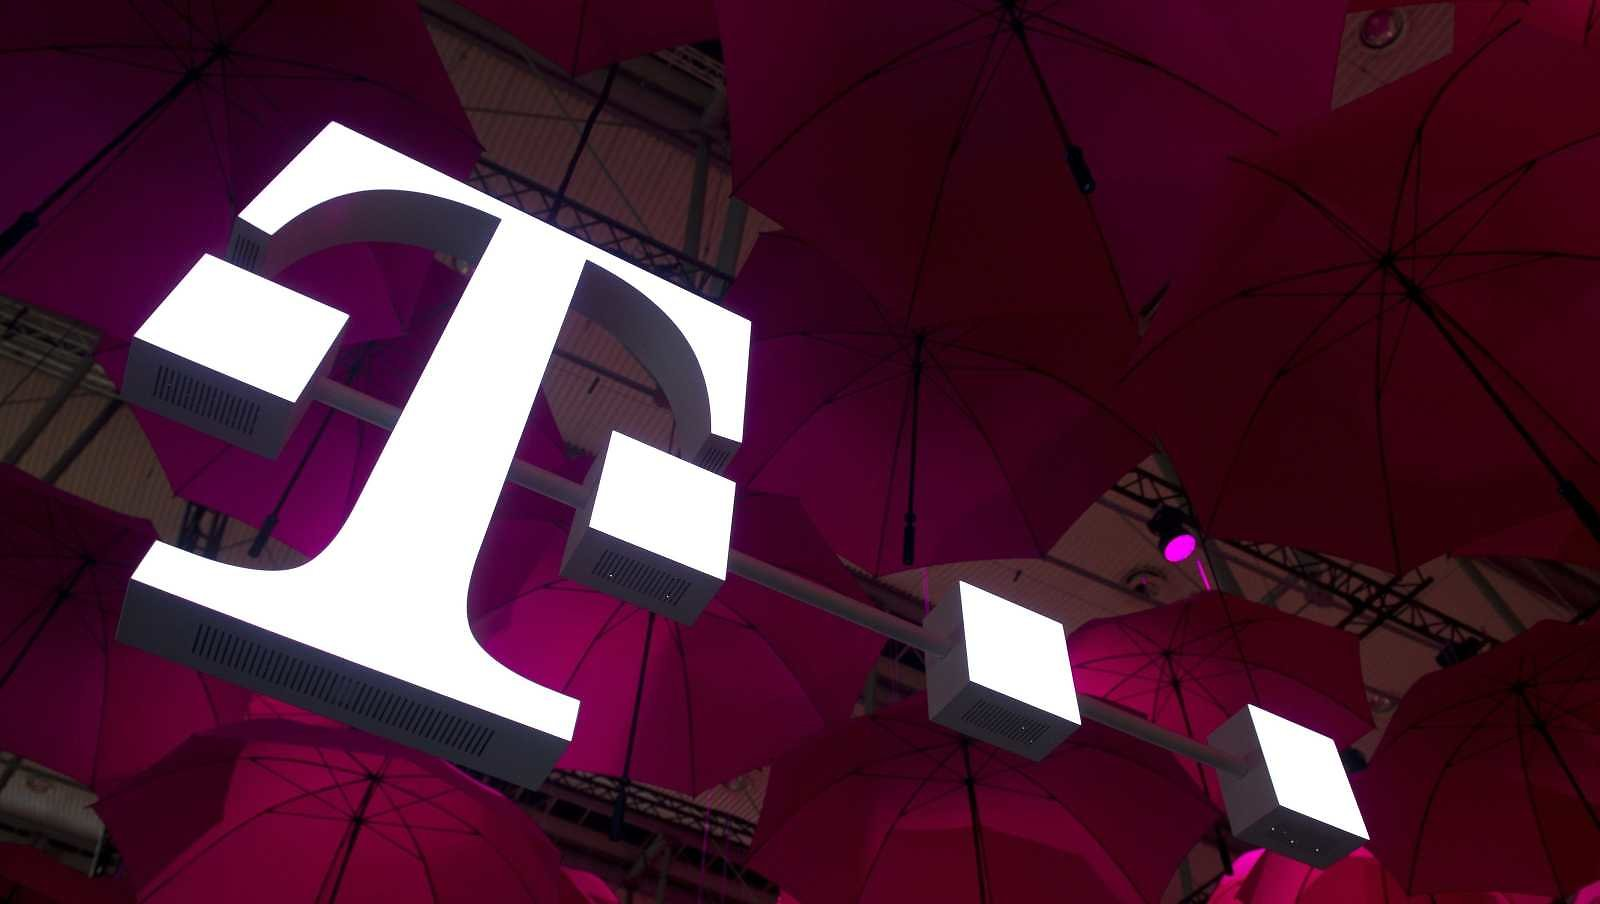 T-Mobile Plans to Give Free Internet to 10 Million Students for Remote Learning, Homework